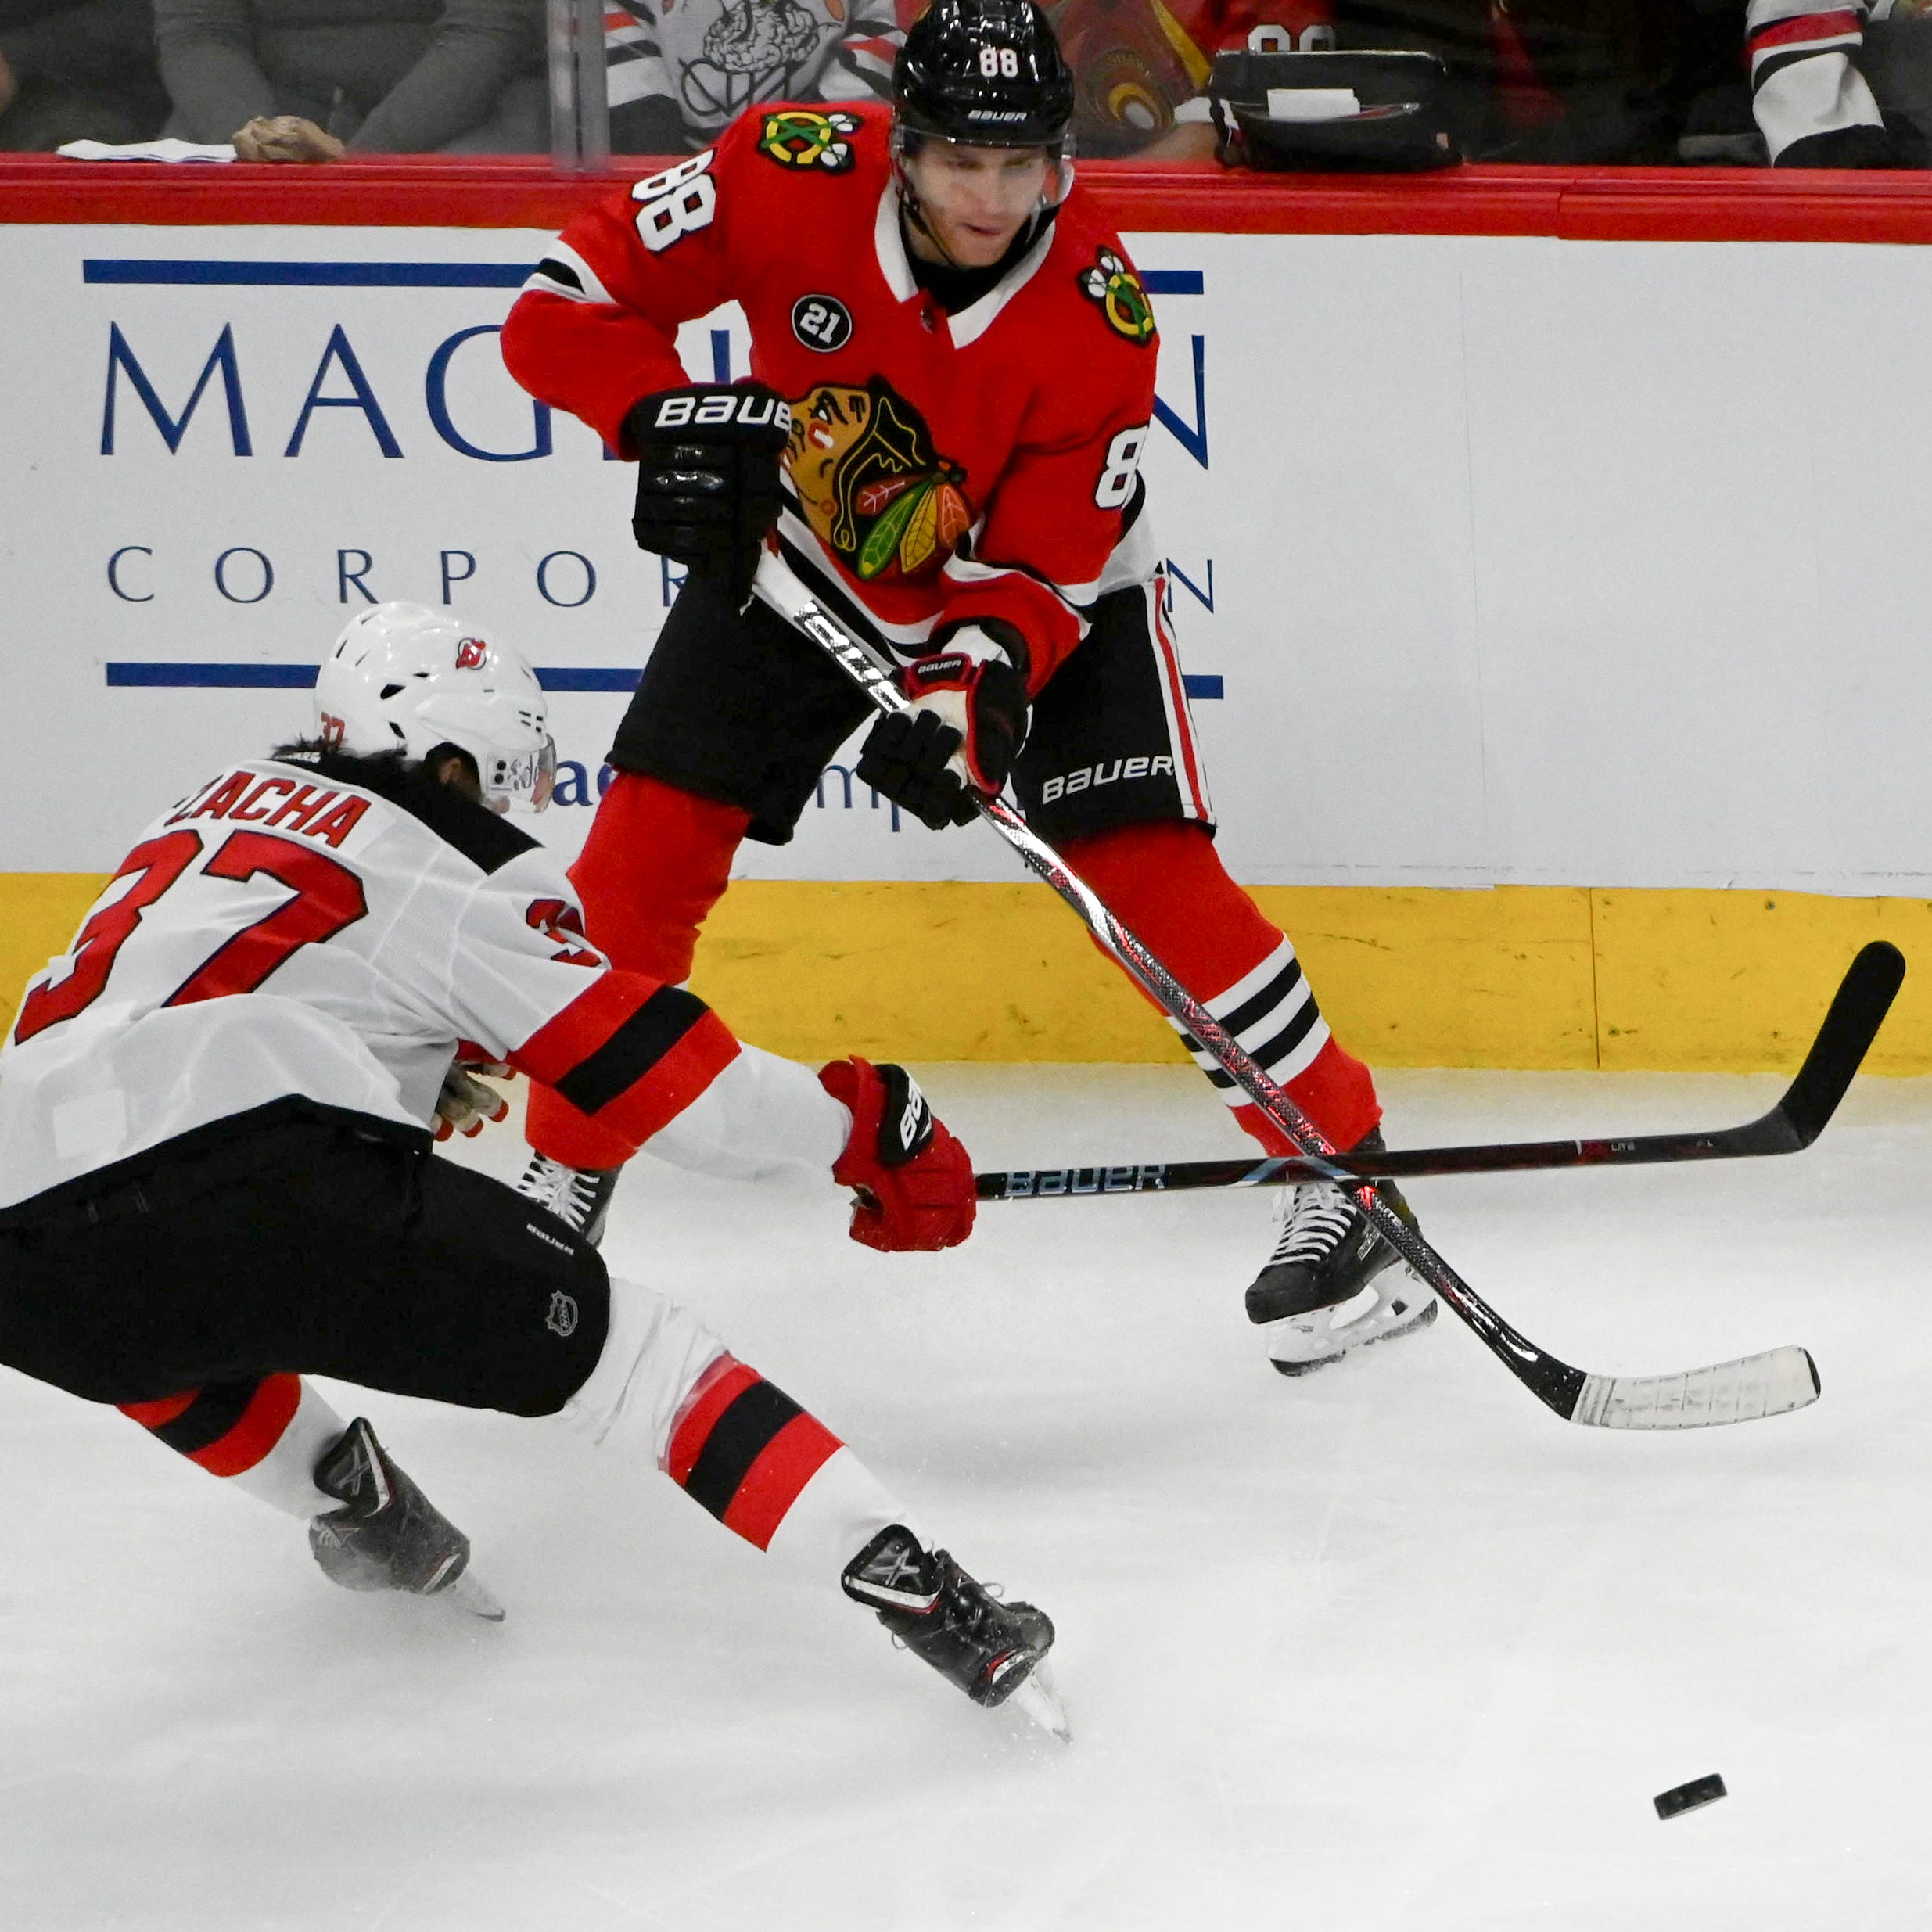 3 takeaways in NJ Devils' loss to Blackhawks